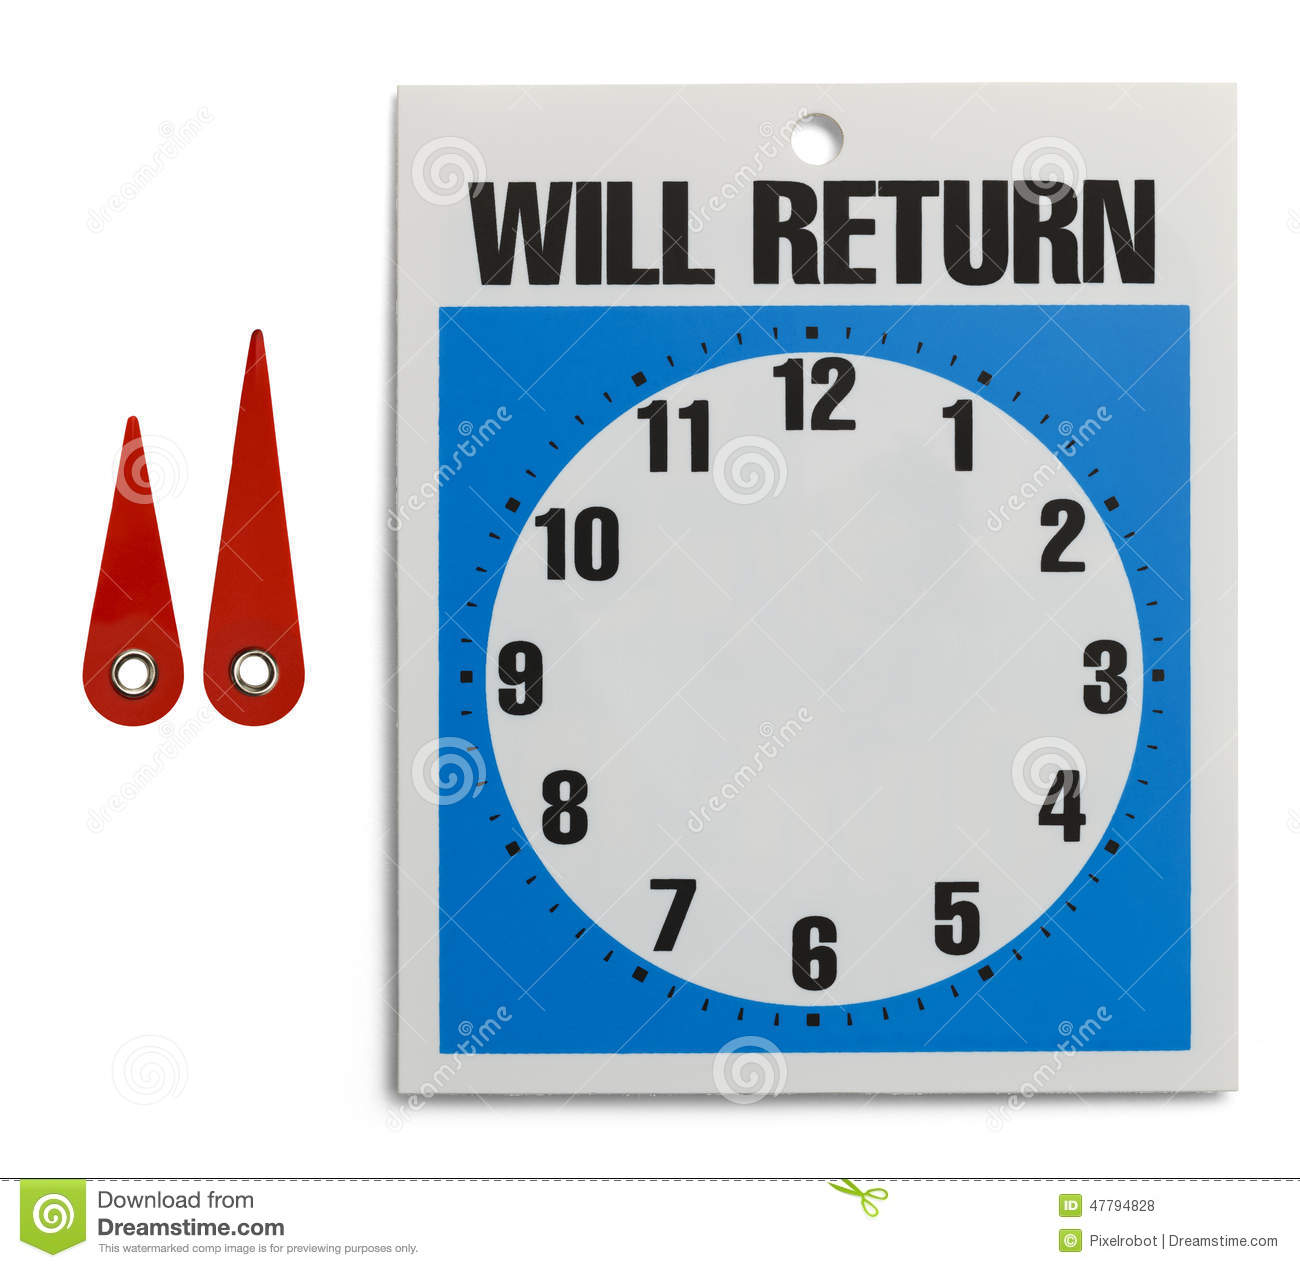 Will Return Sign will return clock stock photos, images, & pictures ...